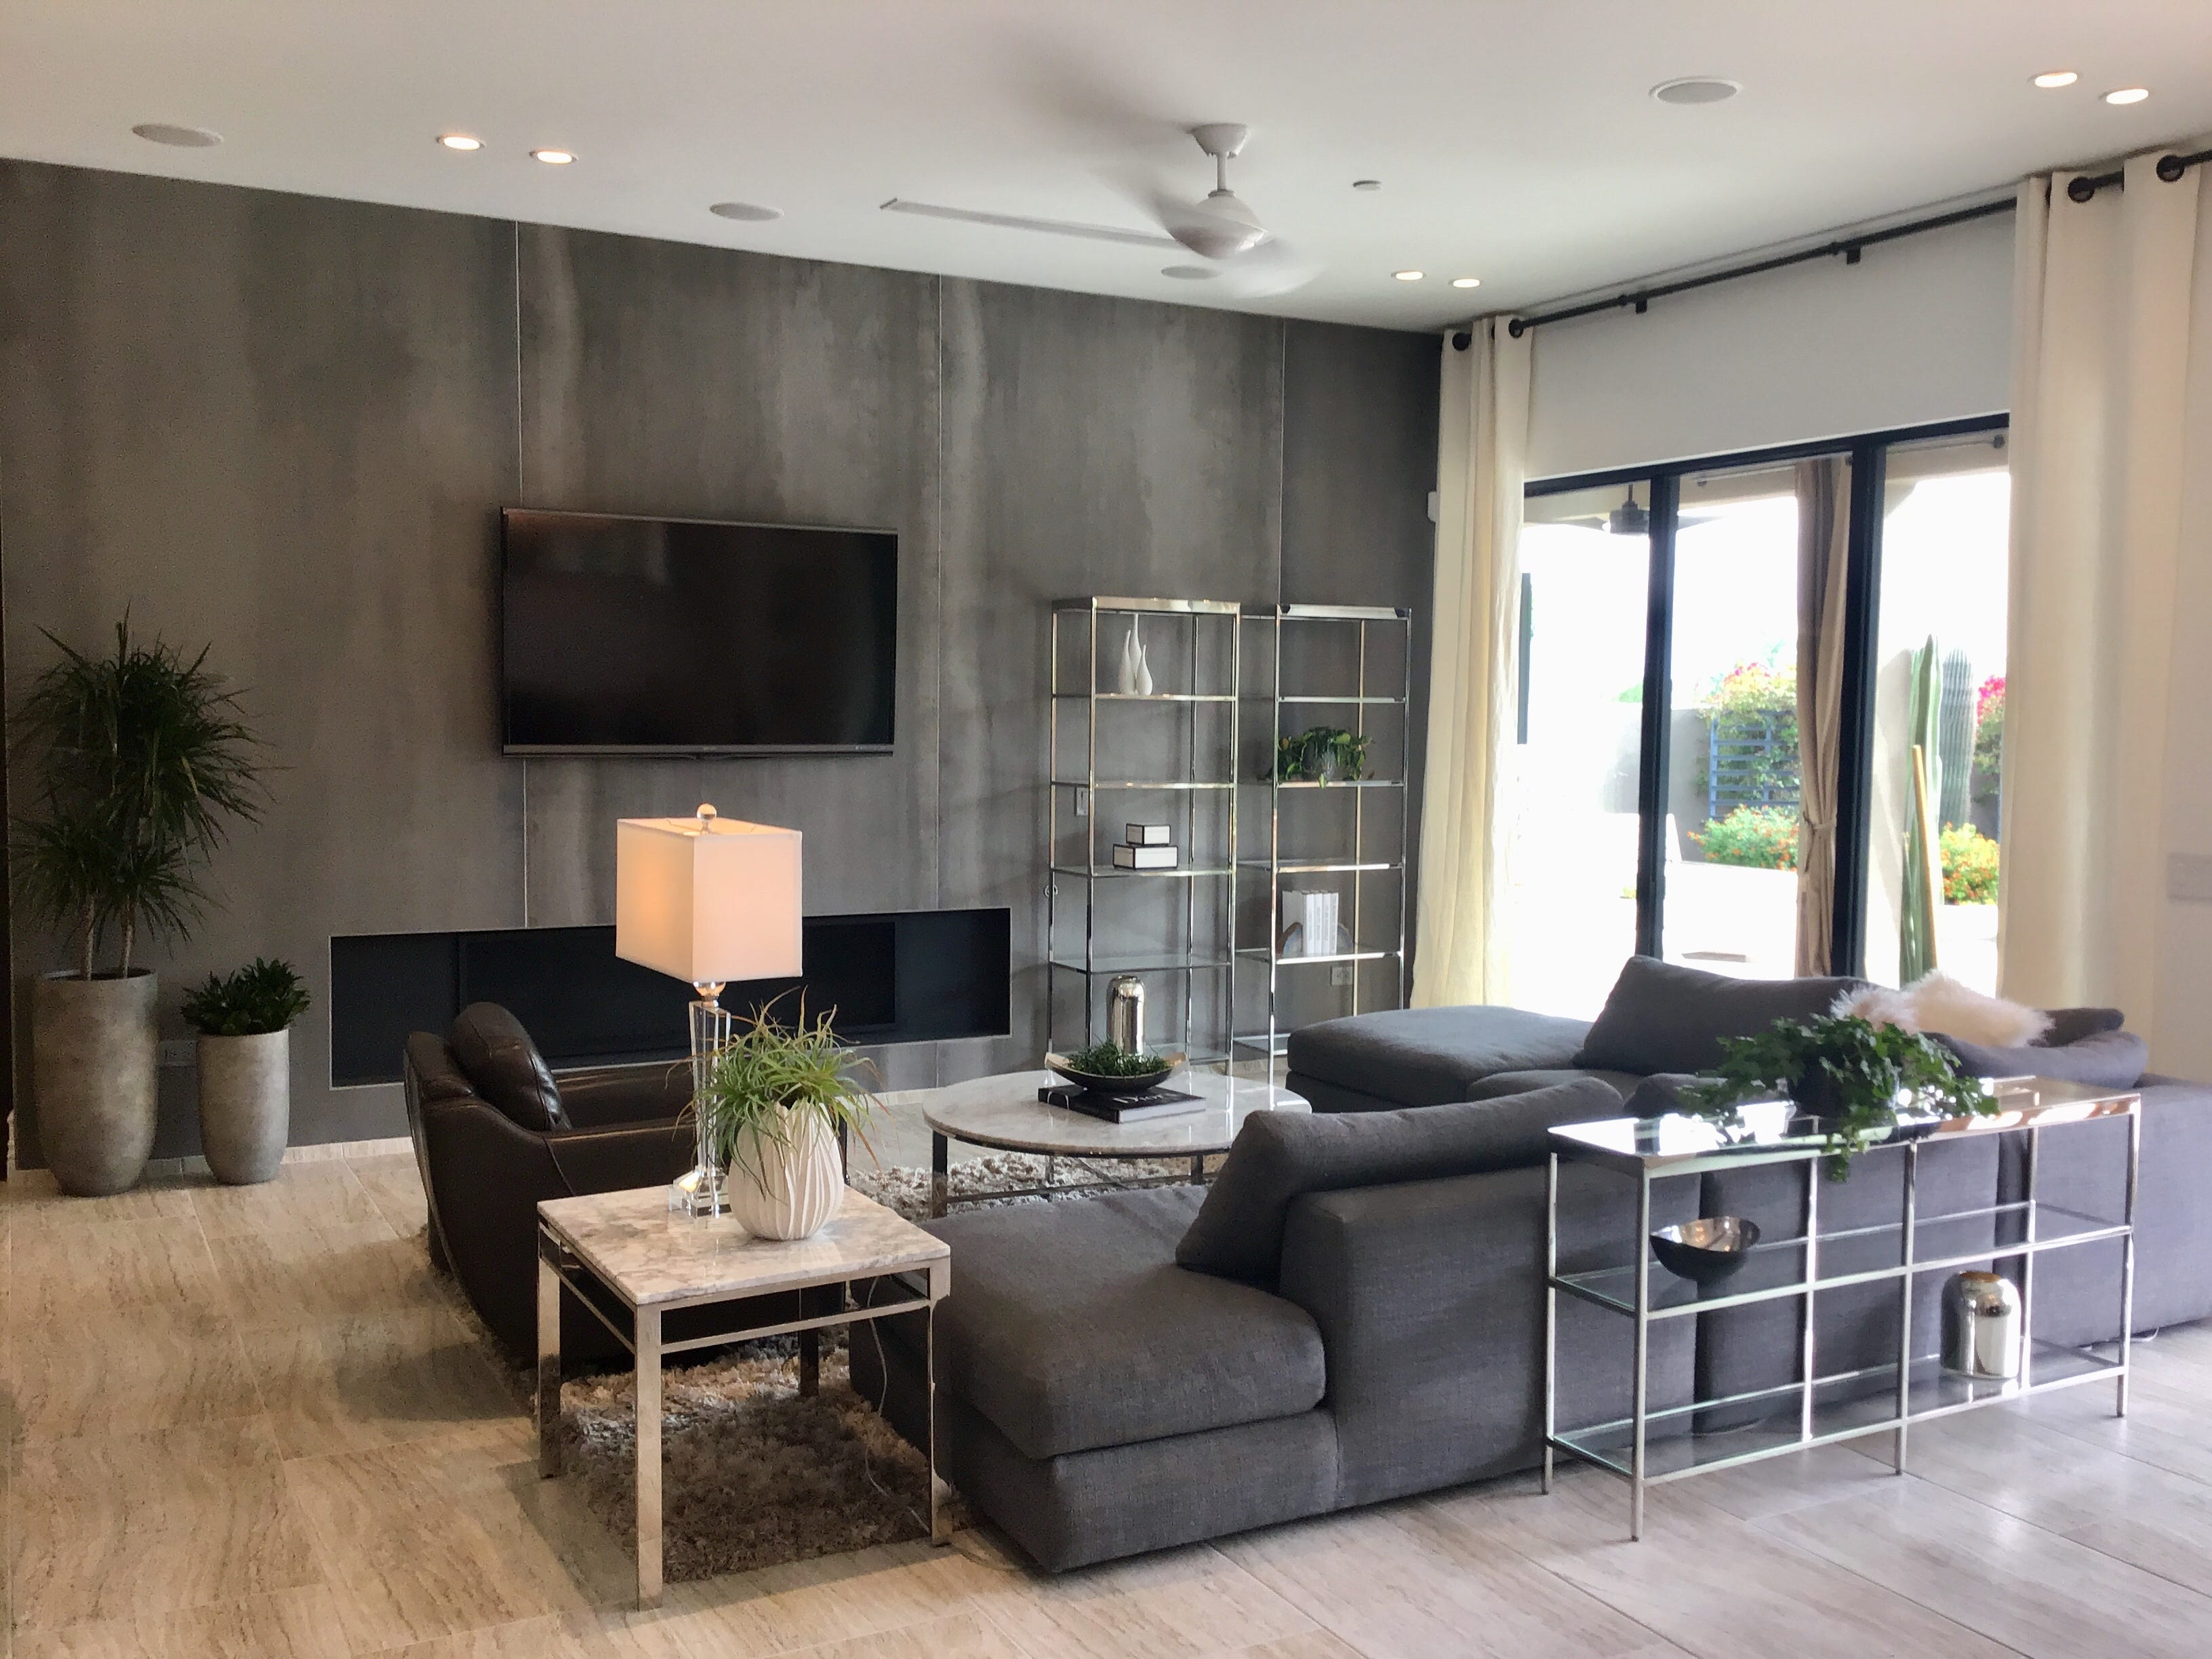 The owners searched long and hard to find the right contemporary furniture for their north Scottsdale home. They wanted it to be modern, but comfortable and inviting.